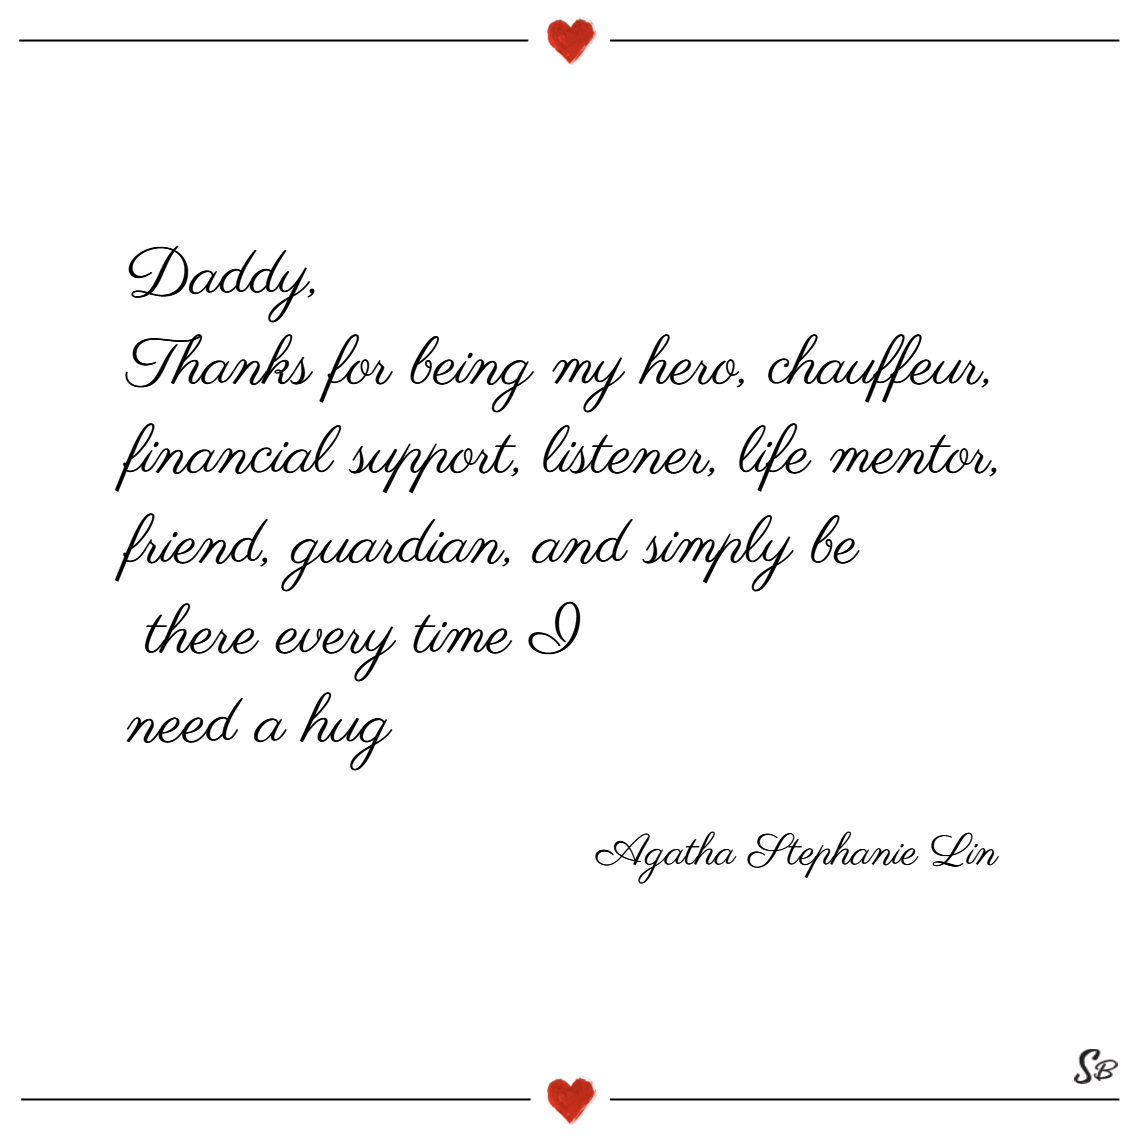 Daddy, thanks for being my hero, chauffeur, financial support, listener, life mentor, friend, guardian, and simply be there every time i need a hug. – agatha stephanie lin